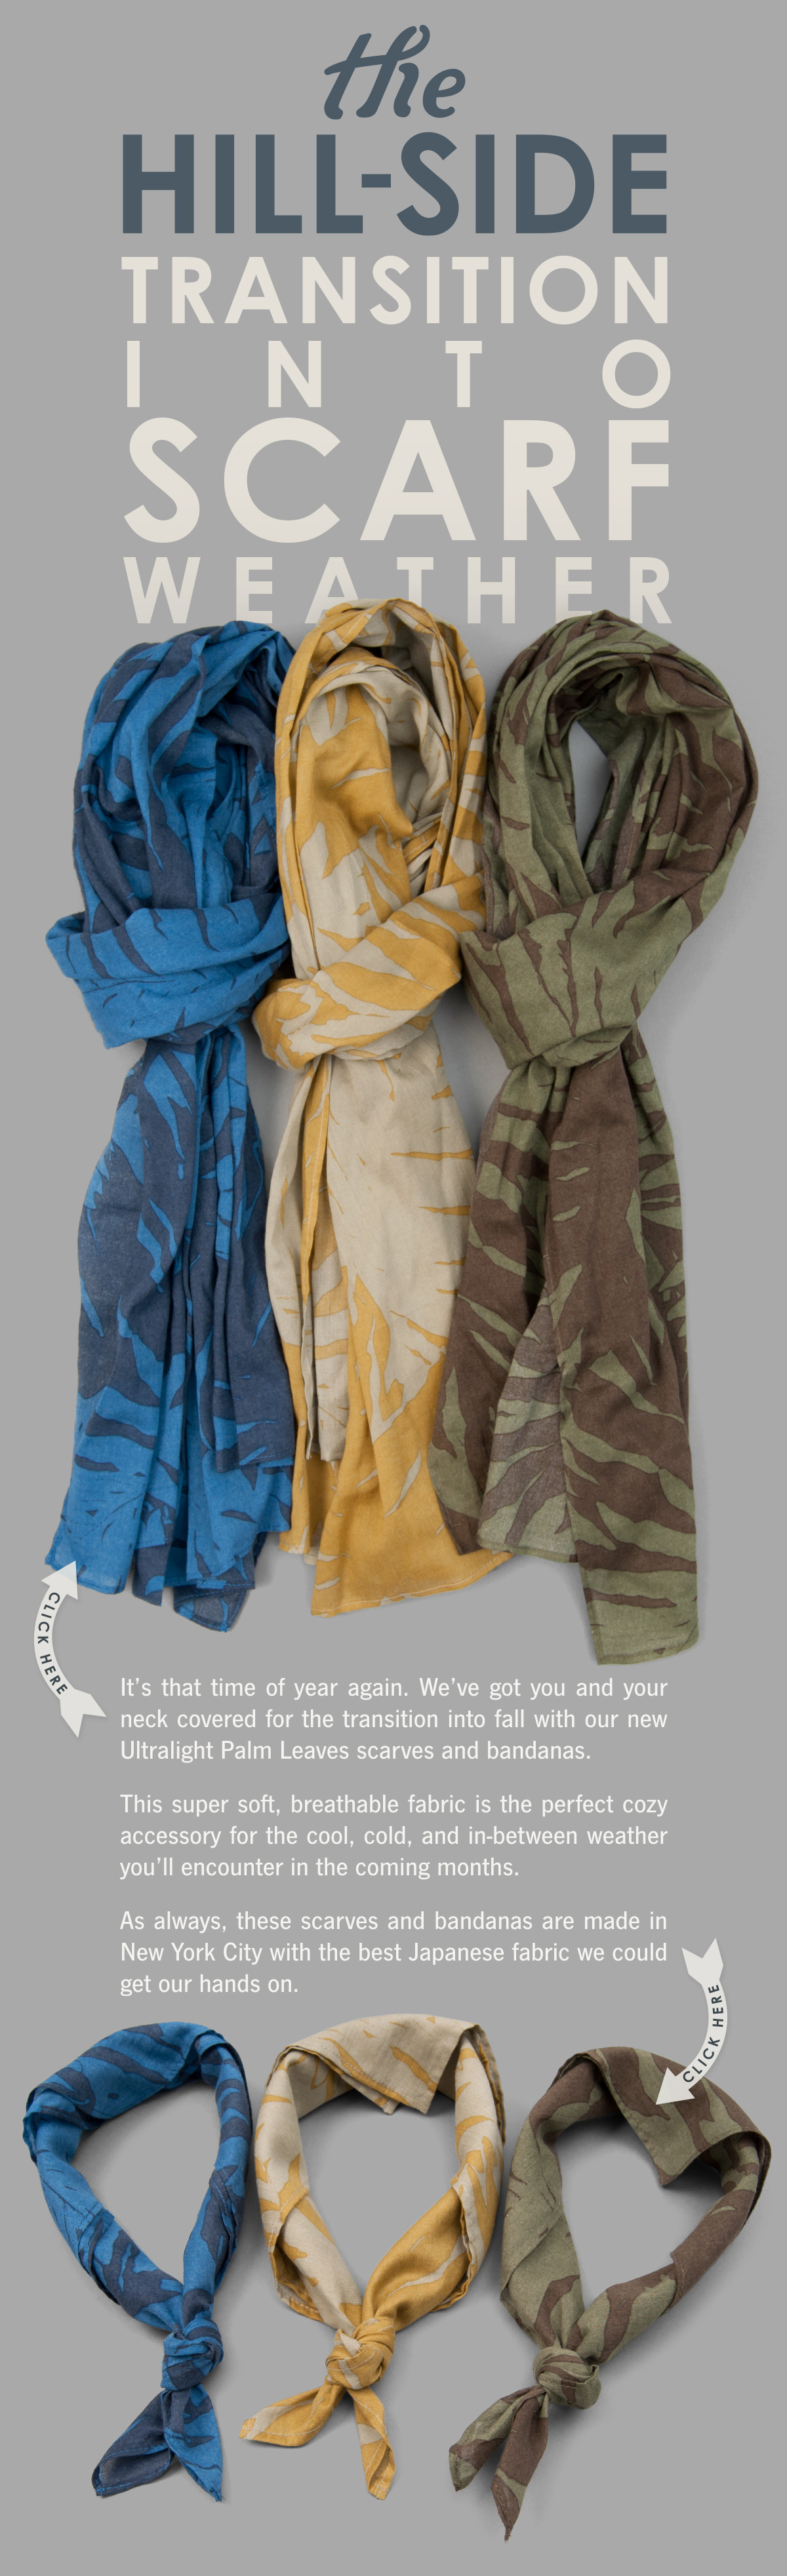 Ultralight Palm Leaves Scarves and Bandanas